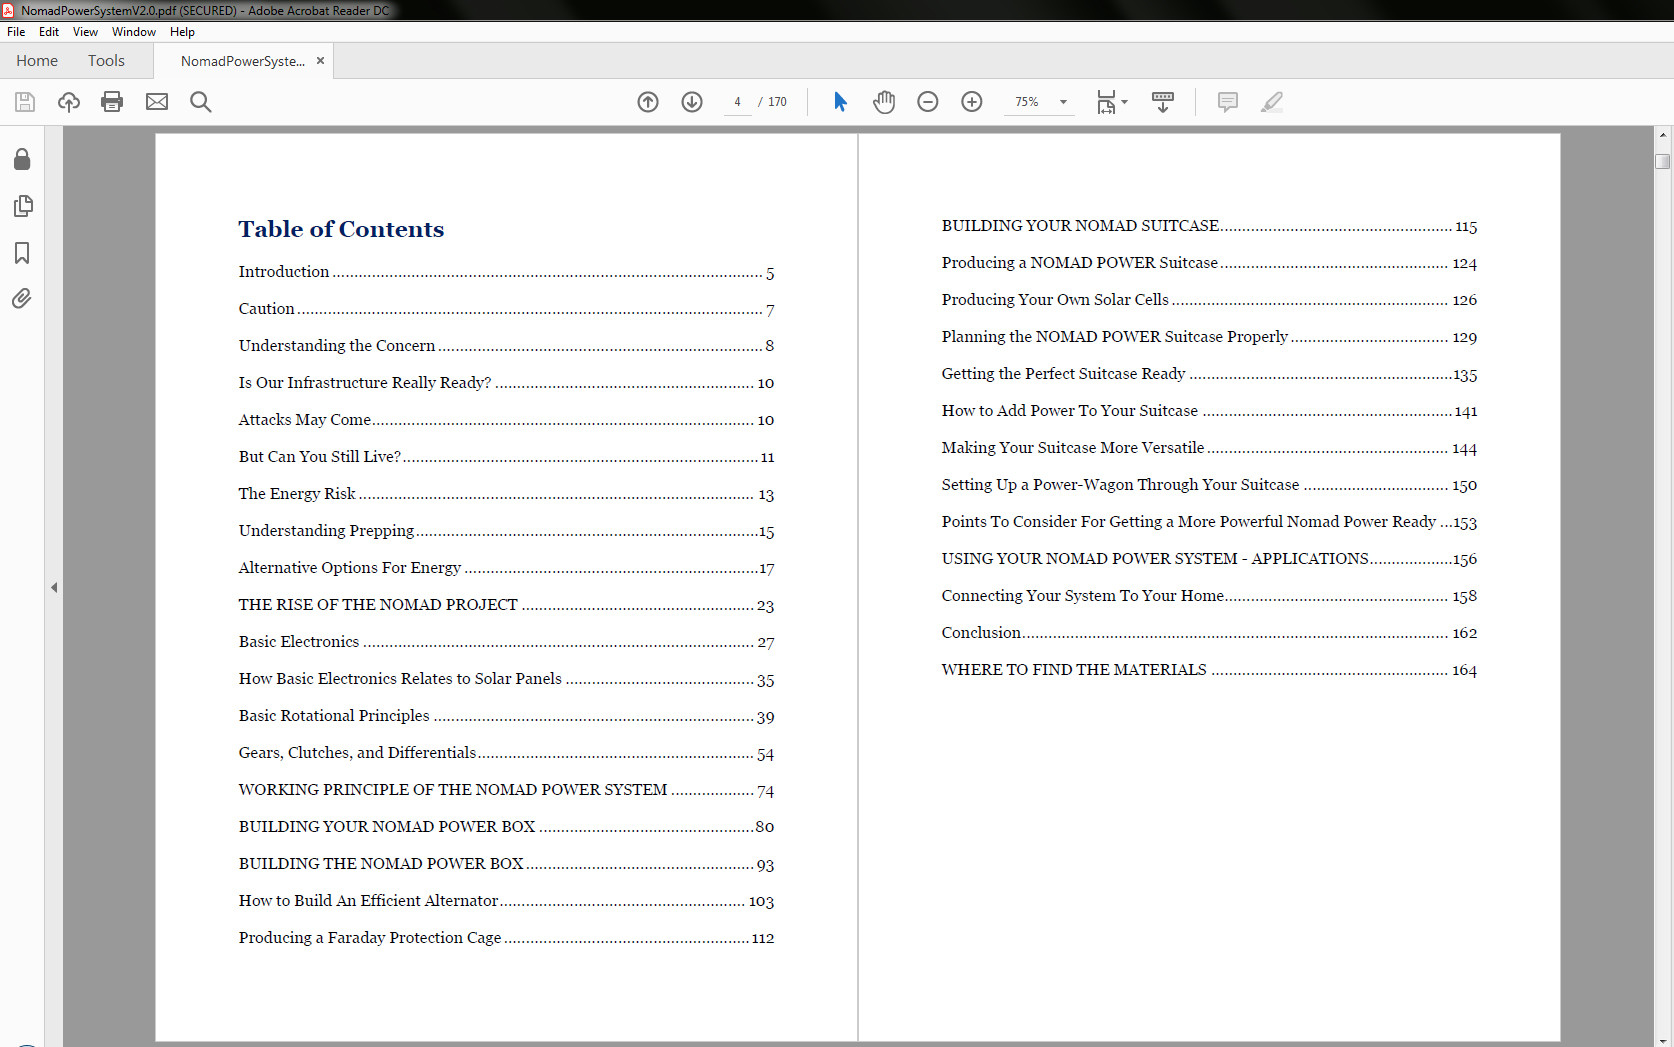 The Nomad Power System Table of Contents